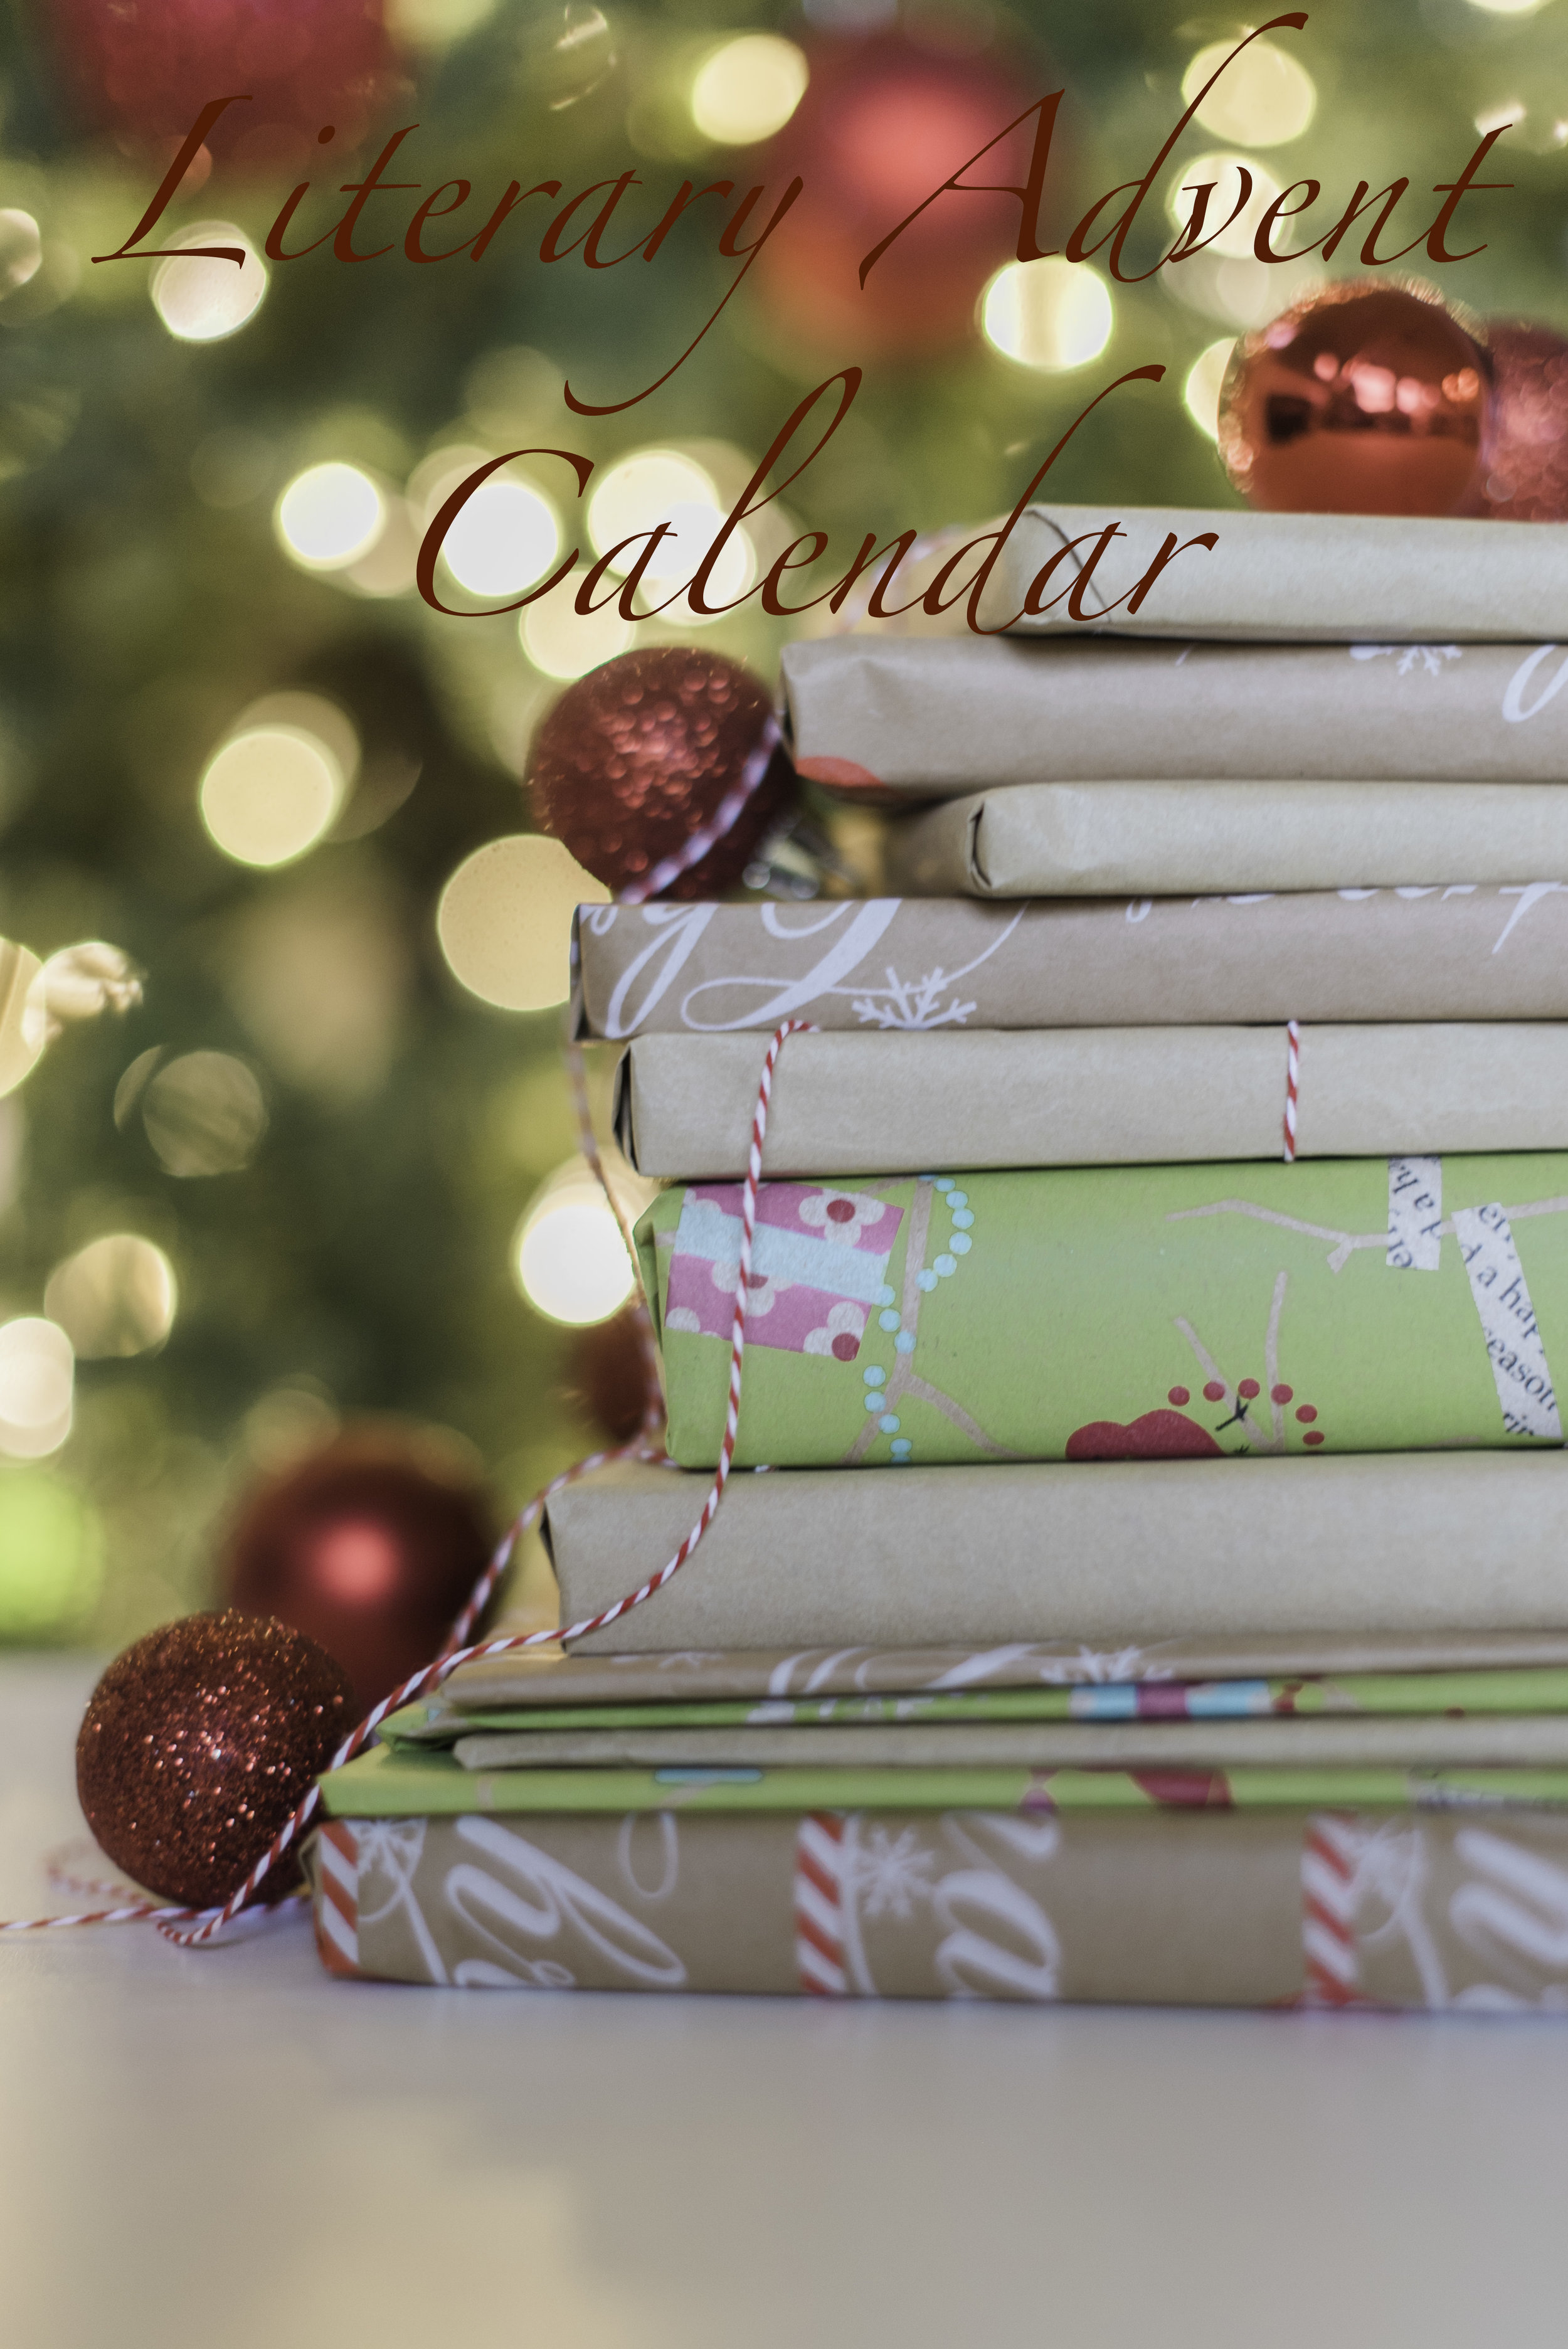 Literary Advent Calendar | Coconut and Rain